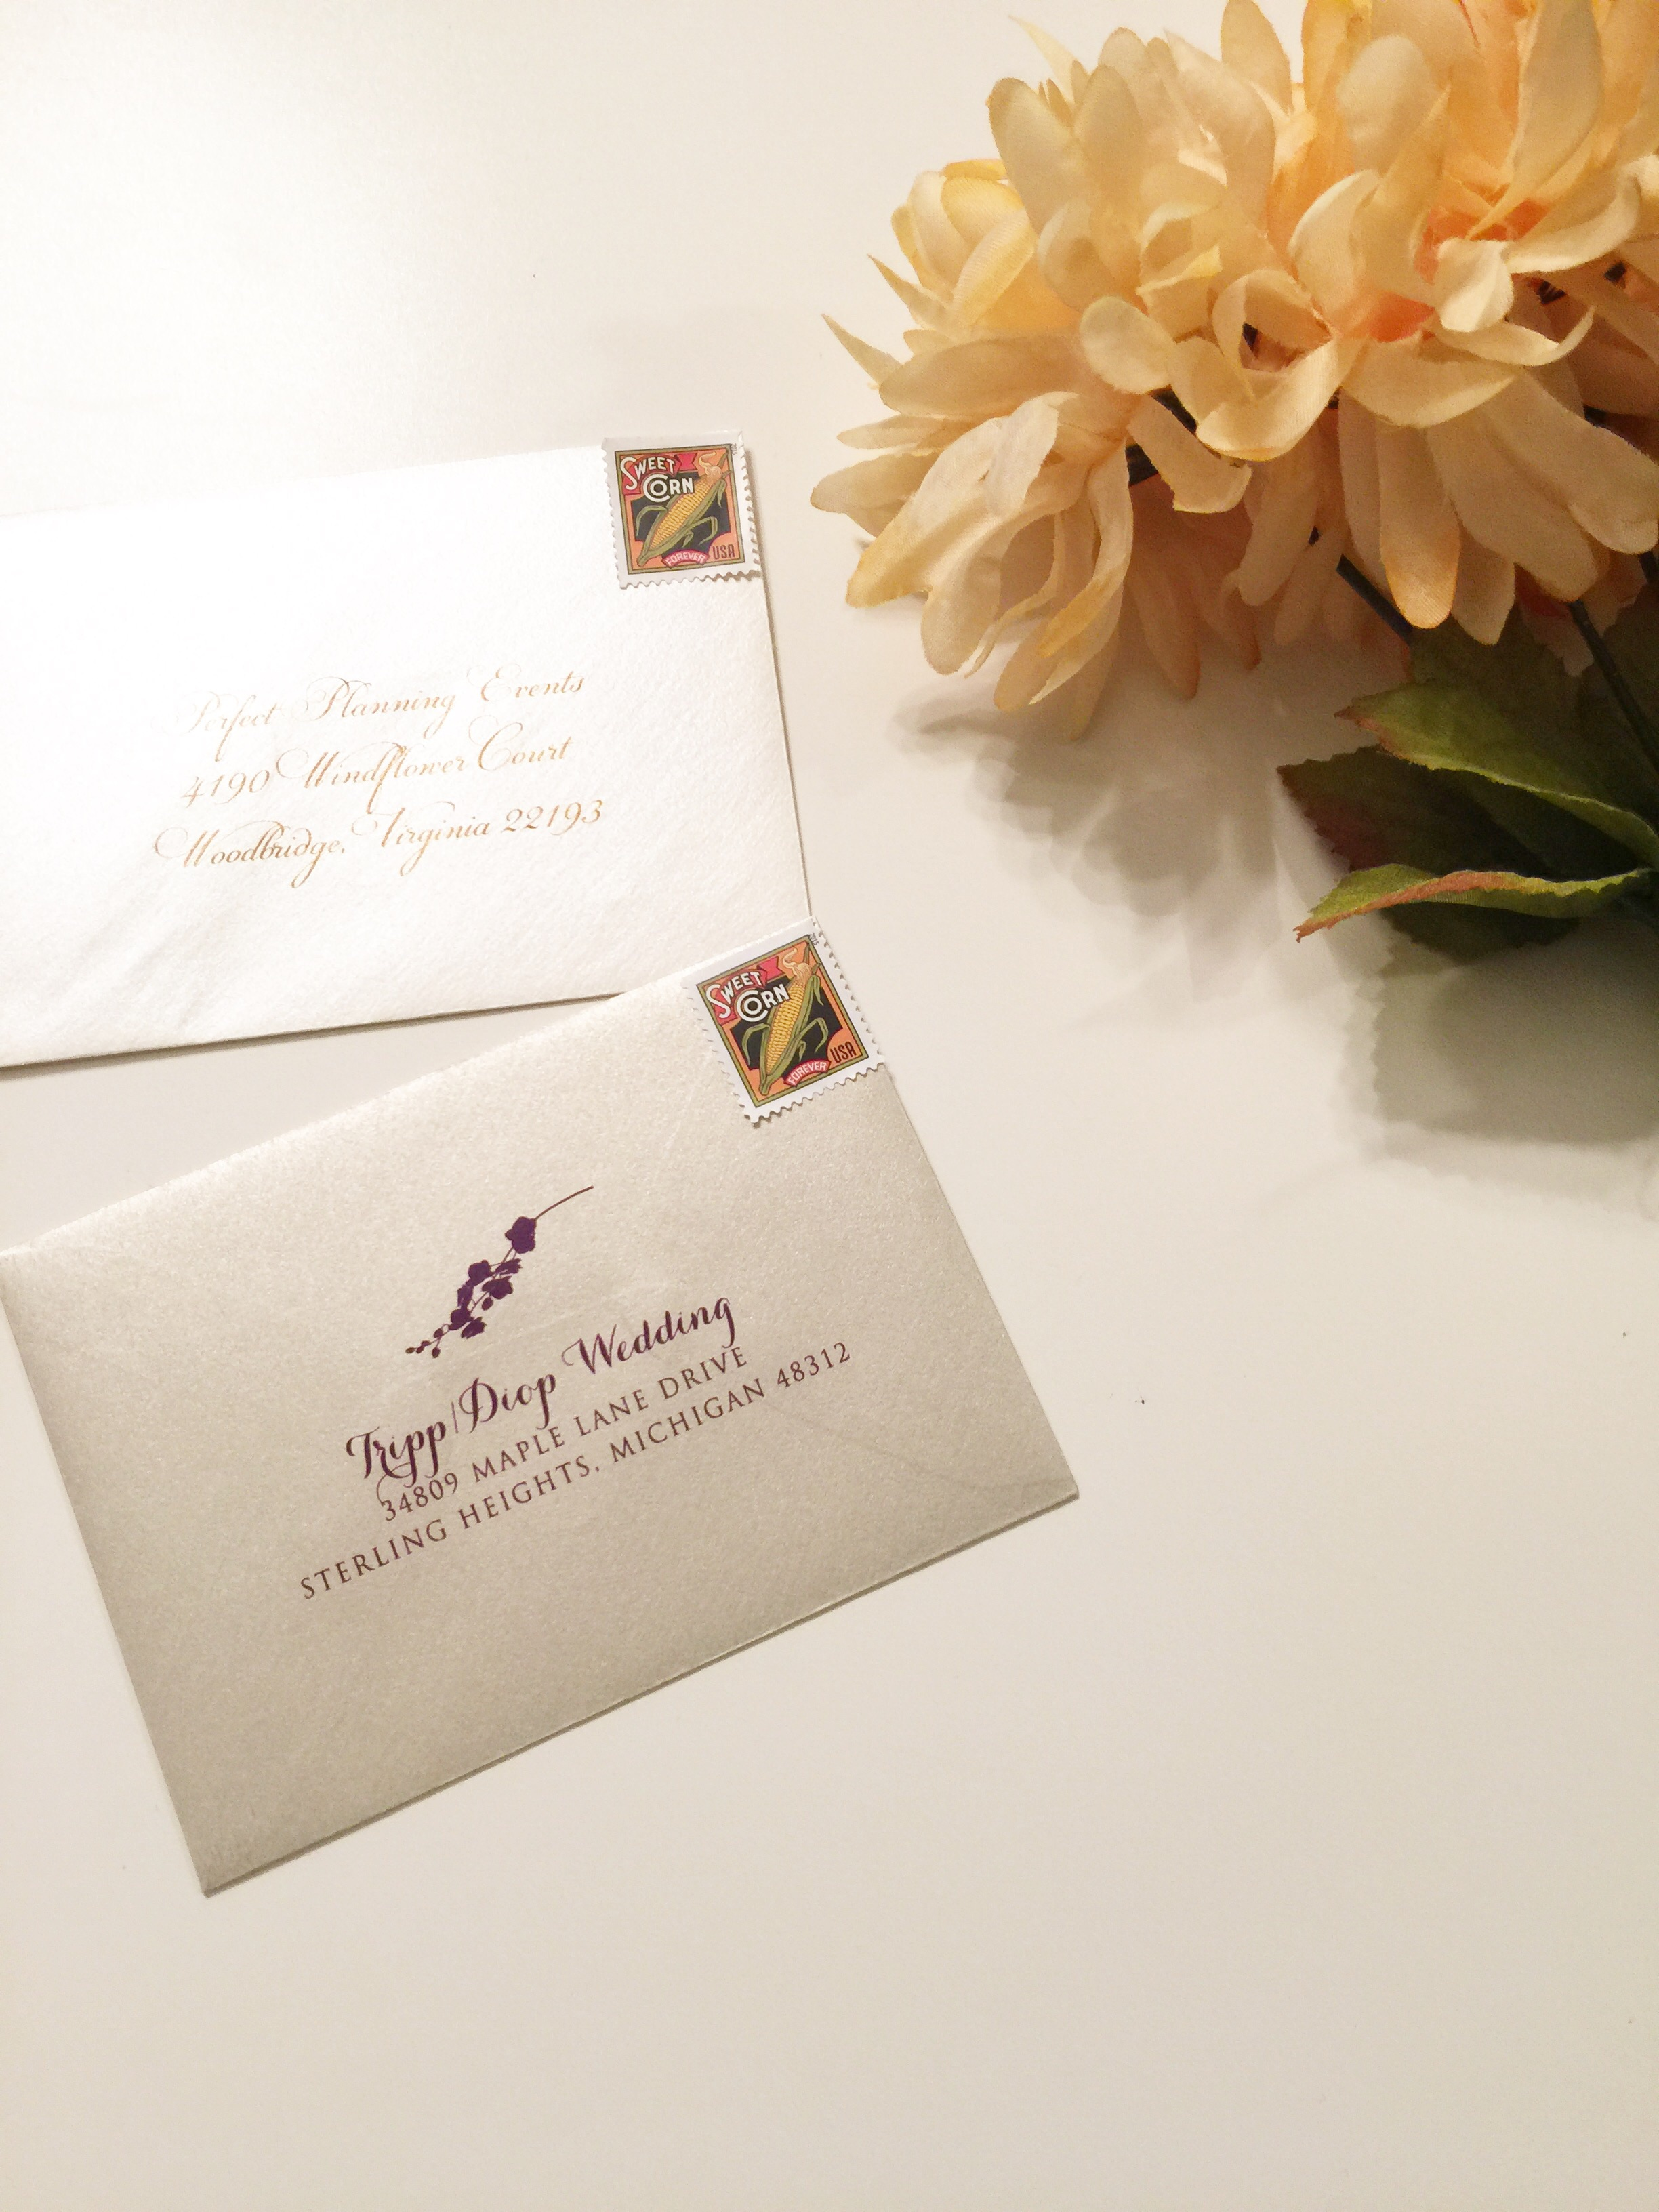 How To Fill Out A Wedding Rsvp.Top 4 Tricks To Get Your Guests To Return Their R S V P Cards The